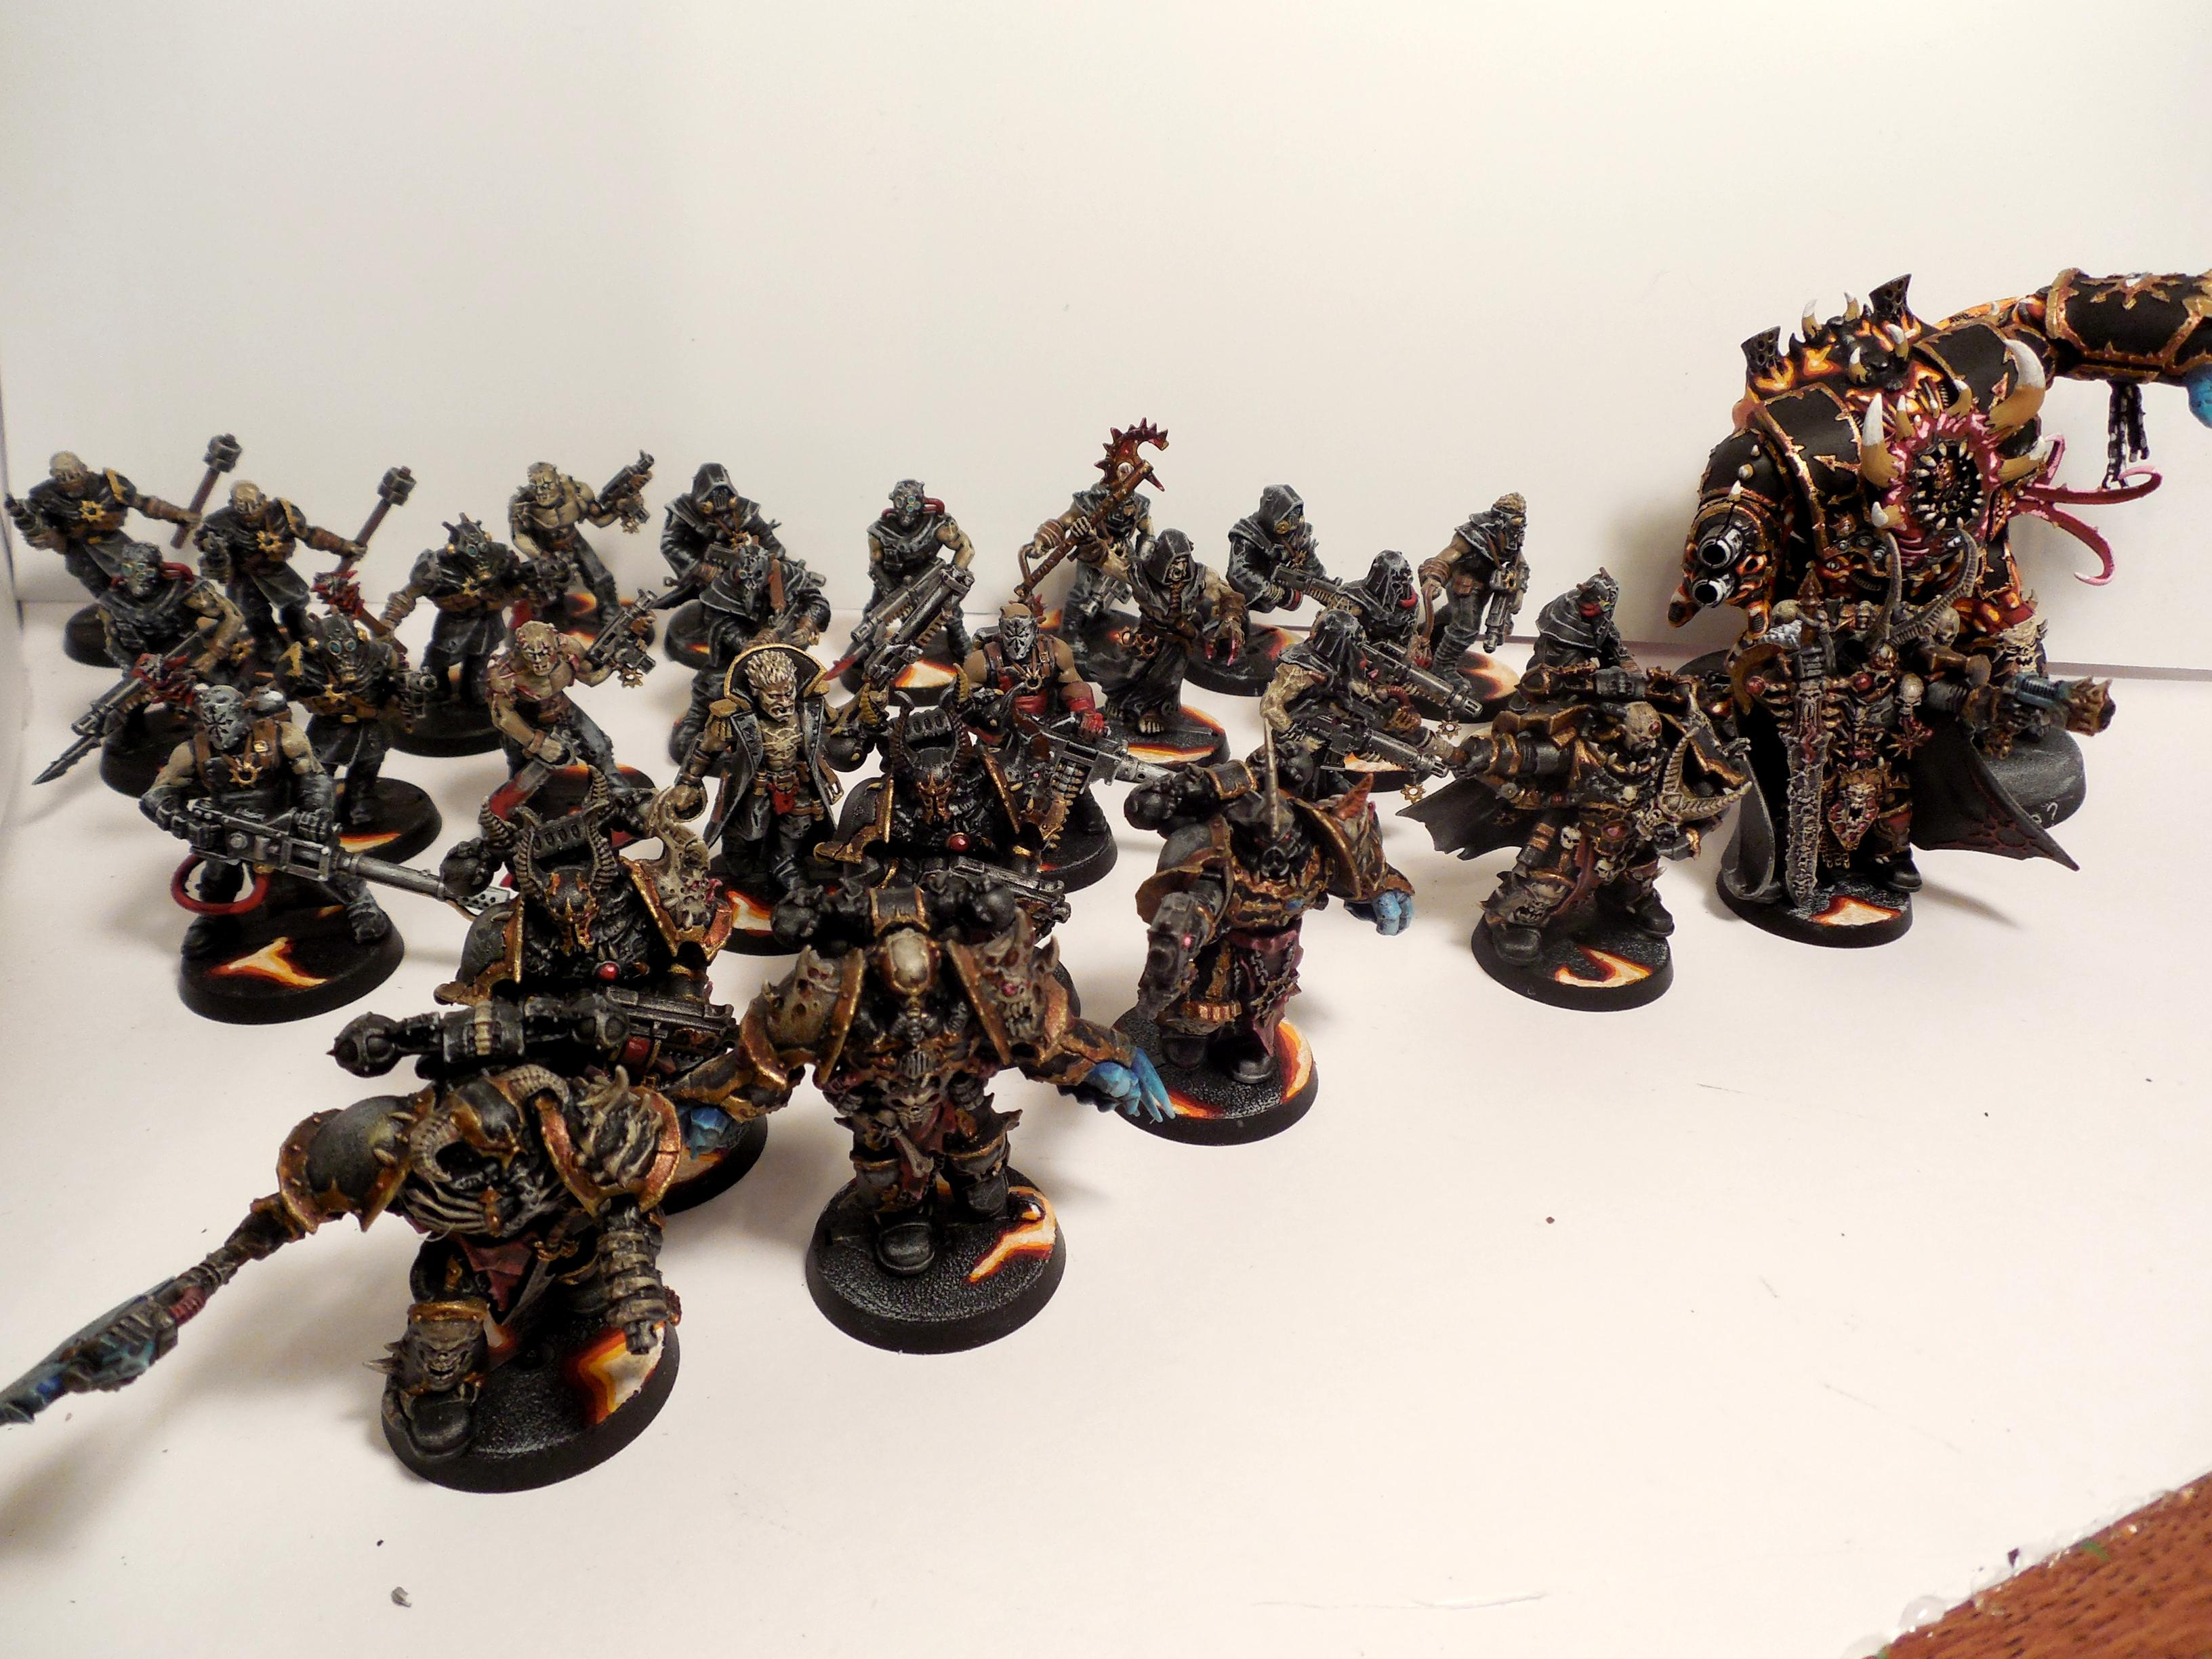 Black Legion, Chaos, Chaos Dark Vengence, Chaos Hellbrute, Chaos Space Marines, Cultists, Warhammer 40,000